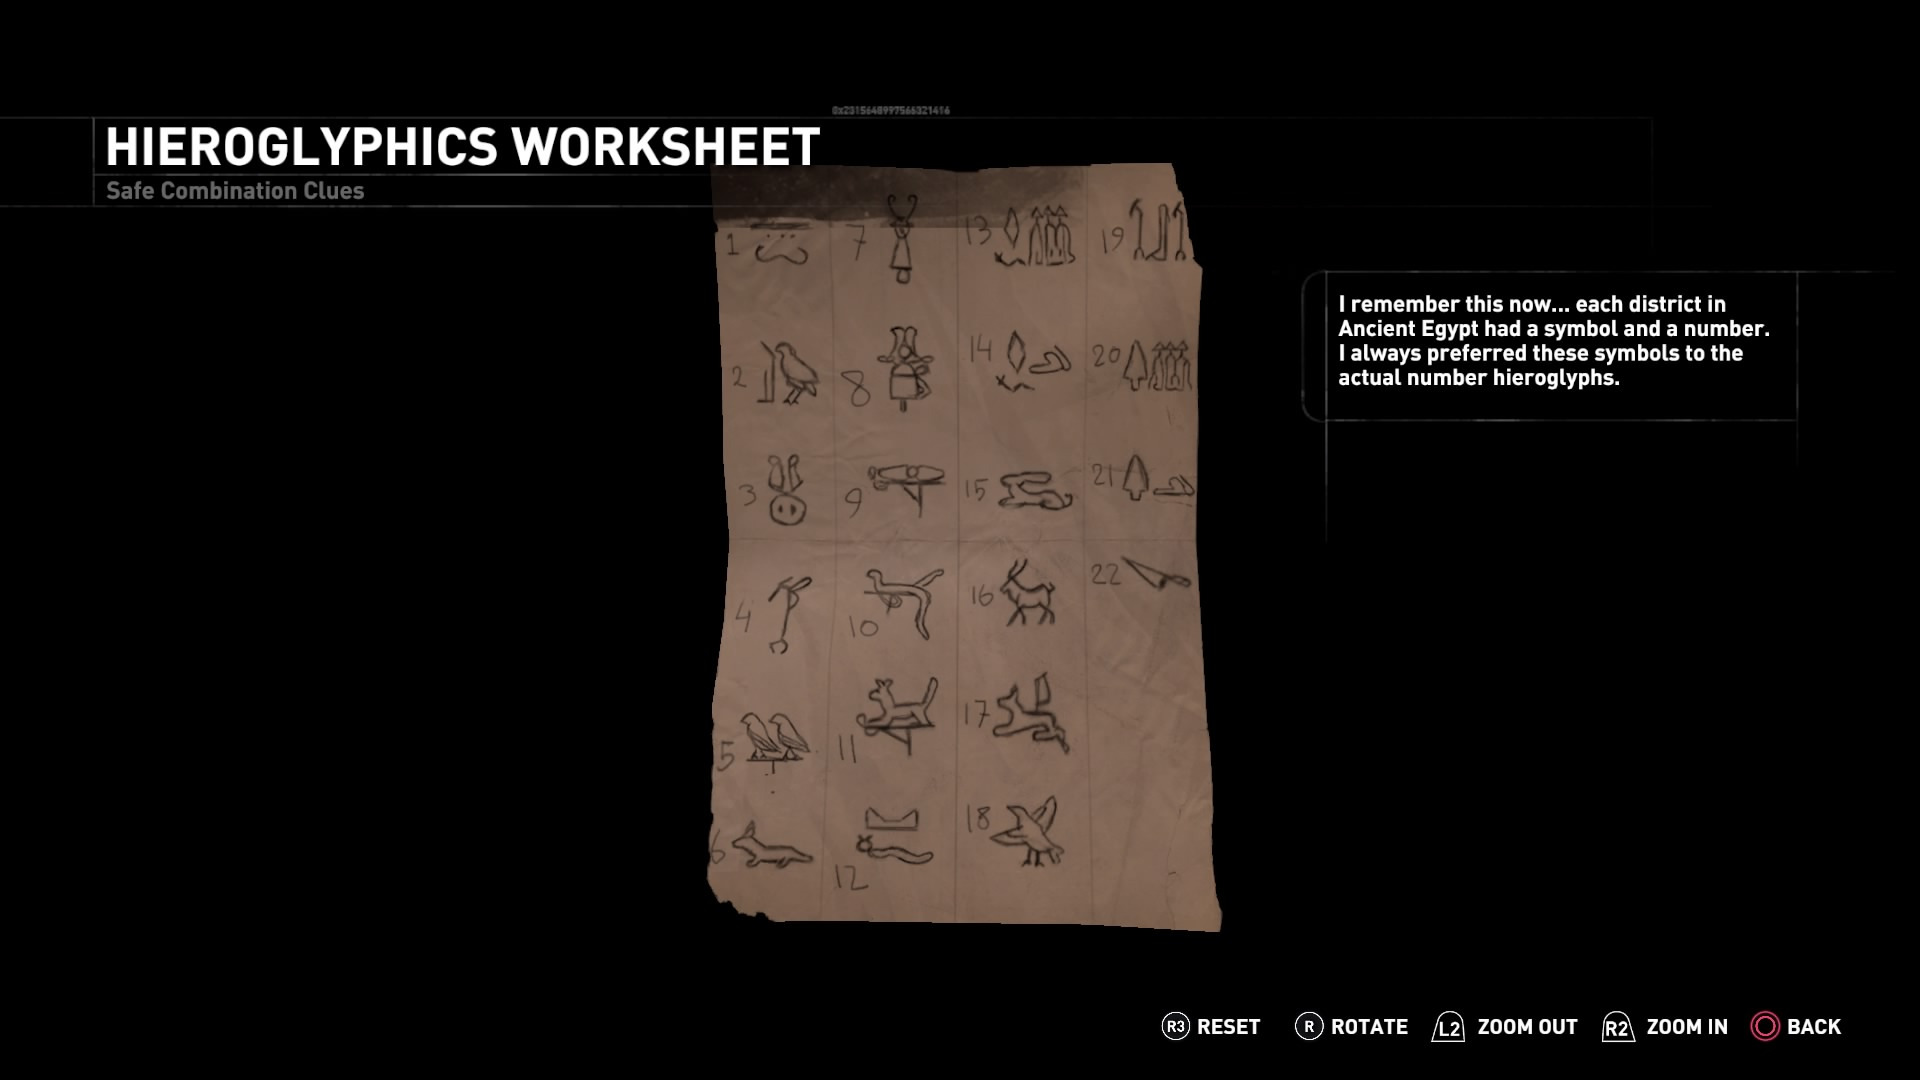 Arte Factual Lara S Hieroglyphics Worksheet Tomb Raider